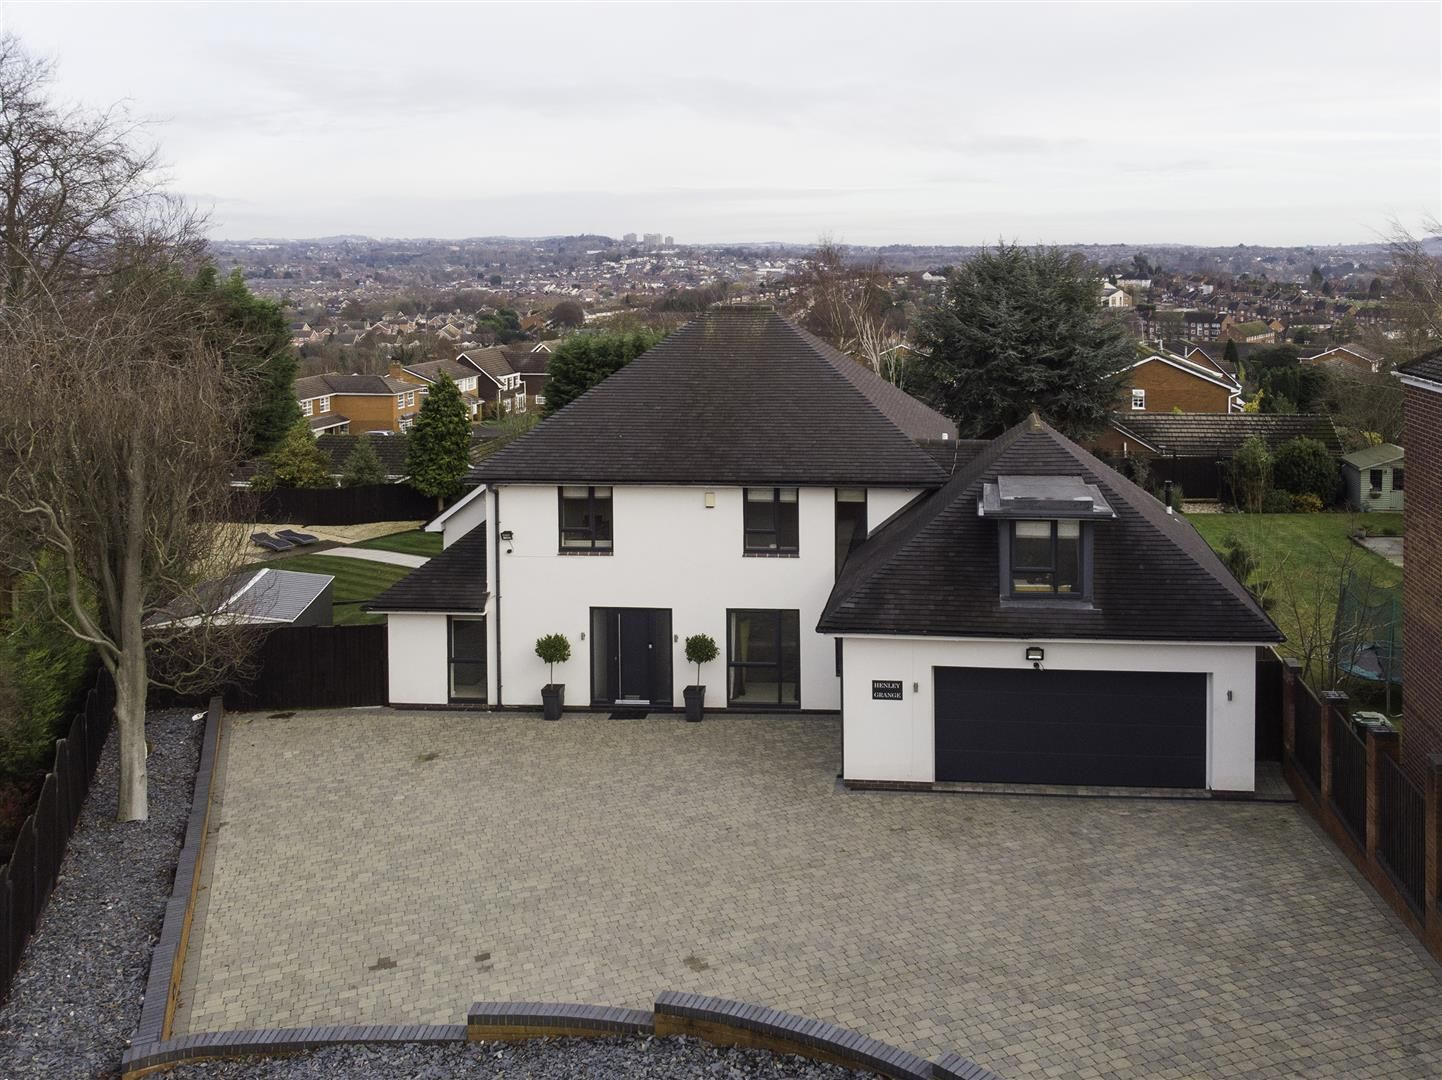 4 bed detached for sale in Stourton 30